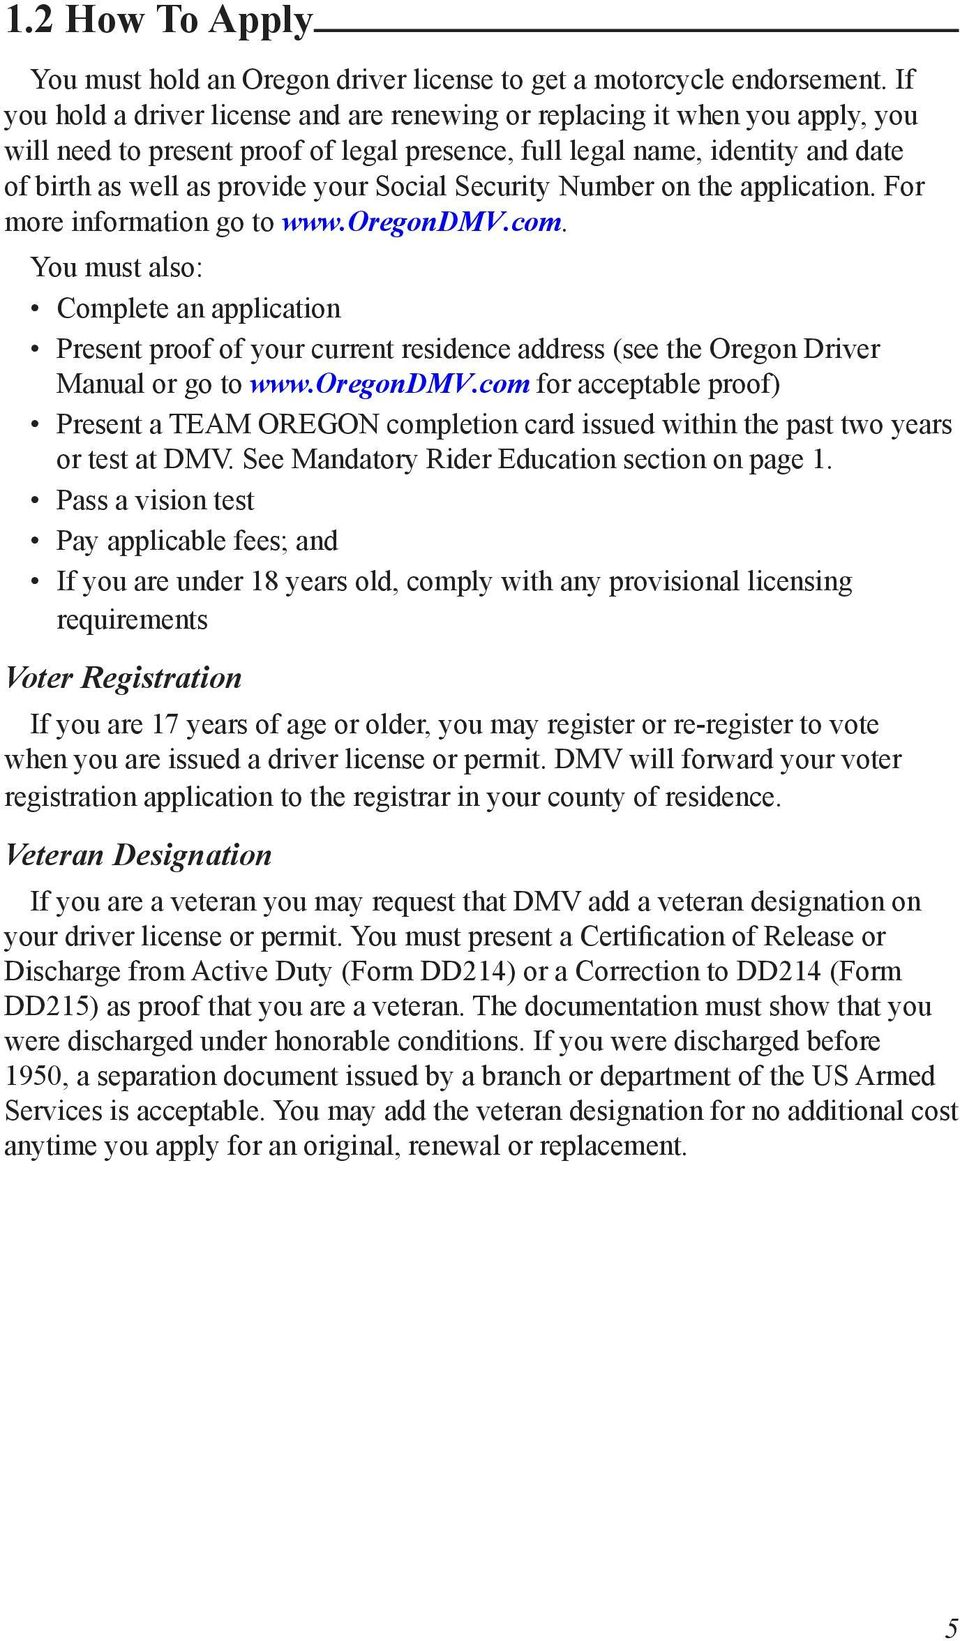 Social Security Number on the application. For more information go to www.oregondmv.com.